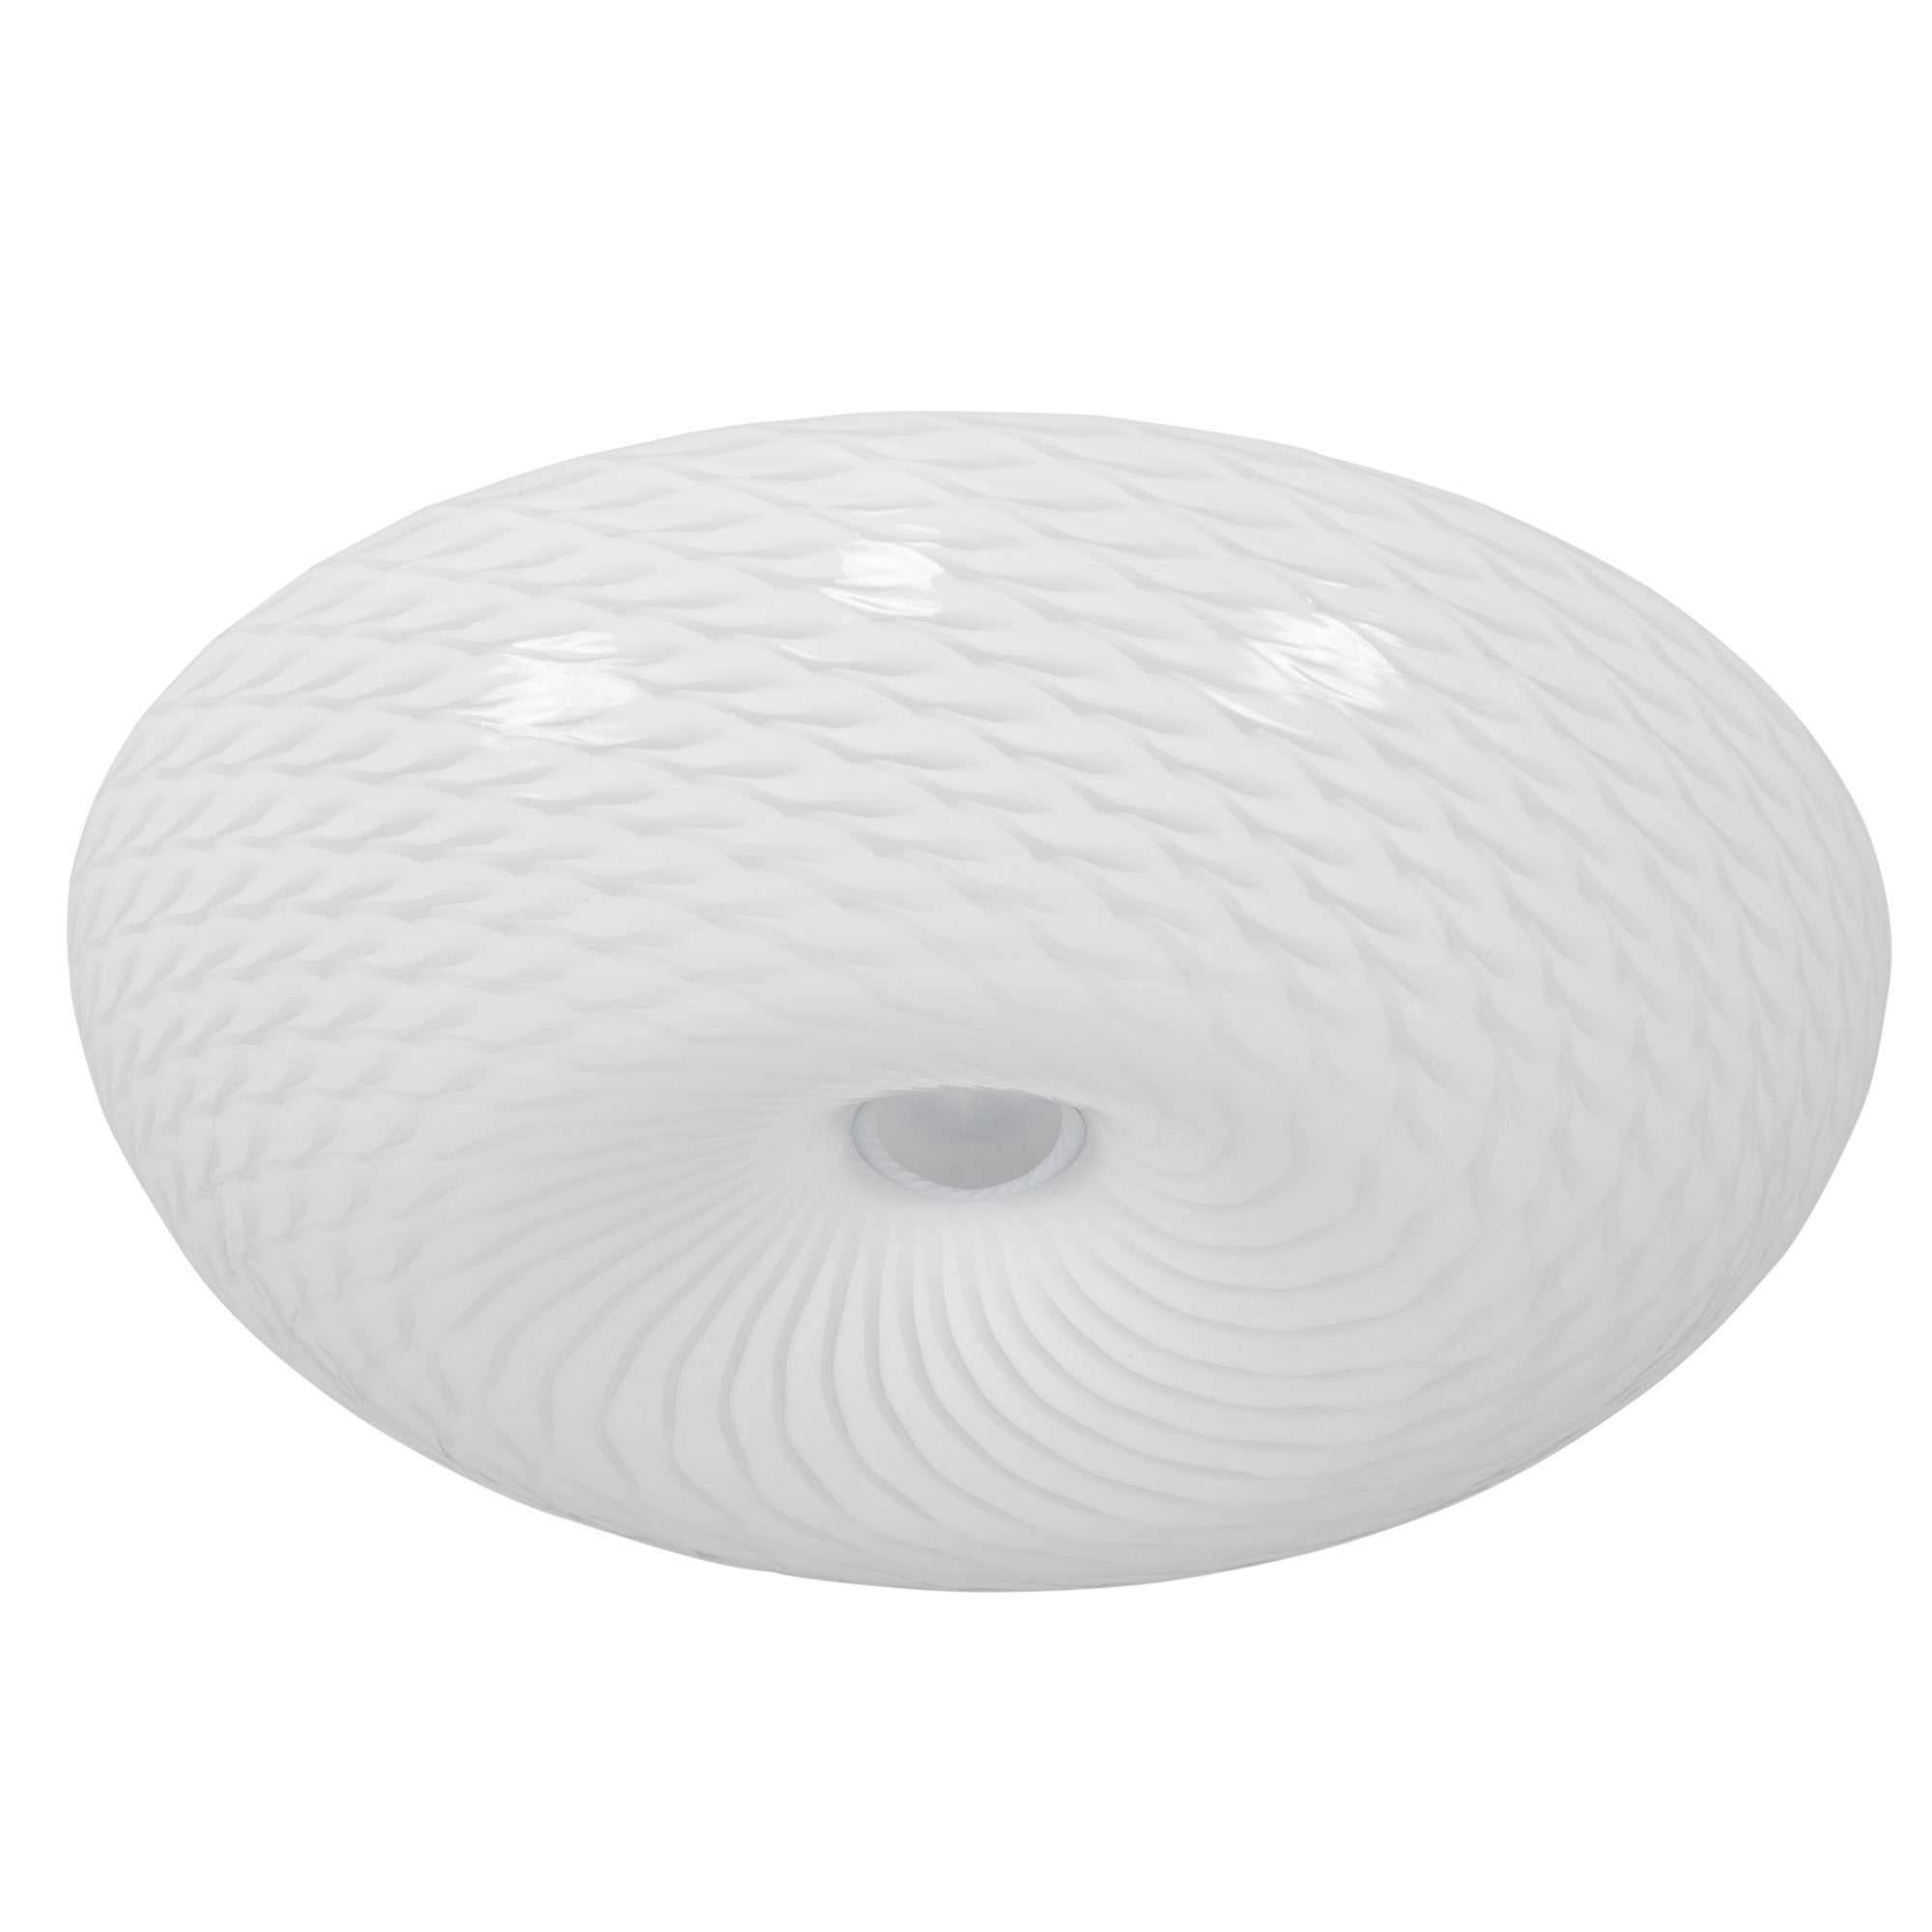 Swirled AC1583 Medium Flush Ceiling Light